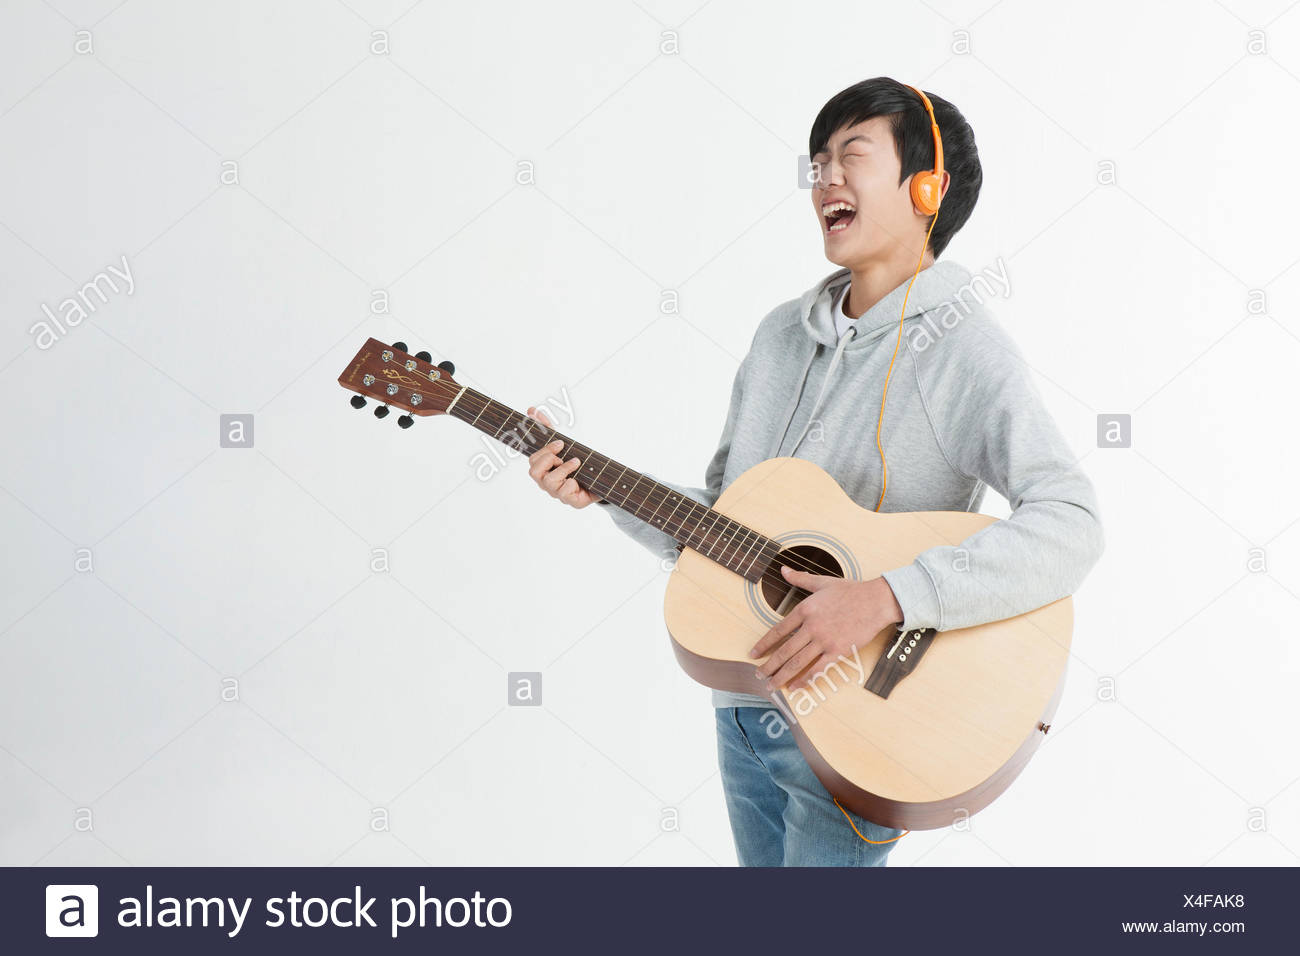 Side view of smiling school boy playing a guitar closing his eyes - Stock Image